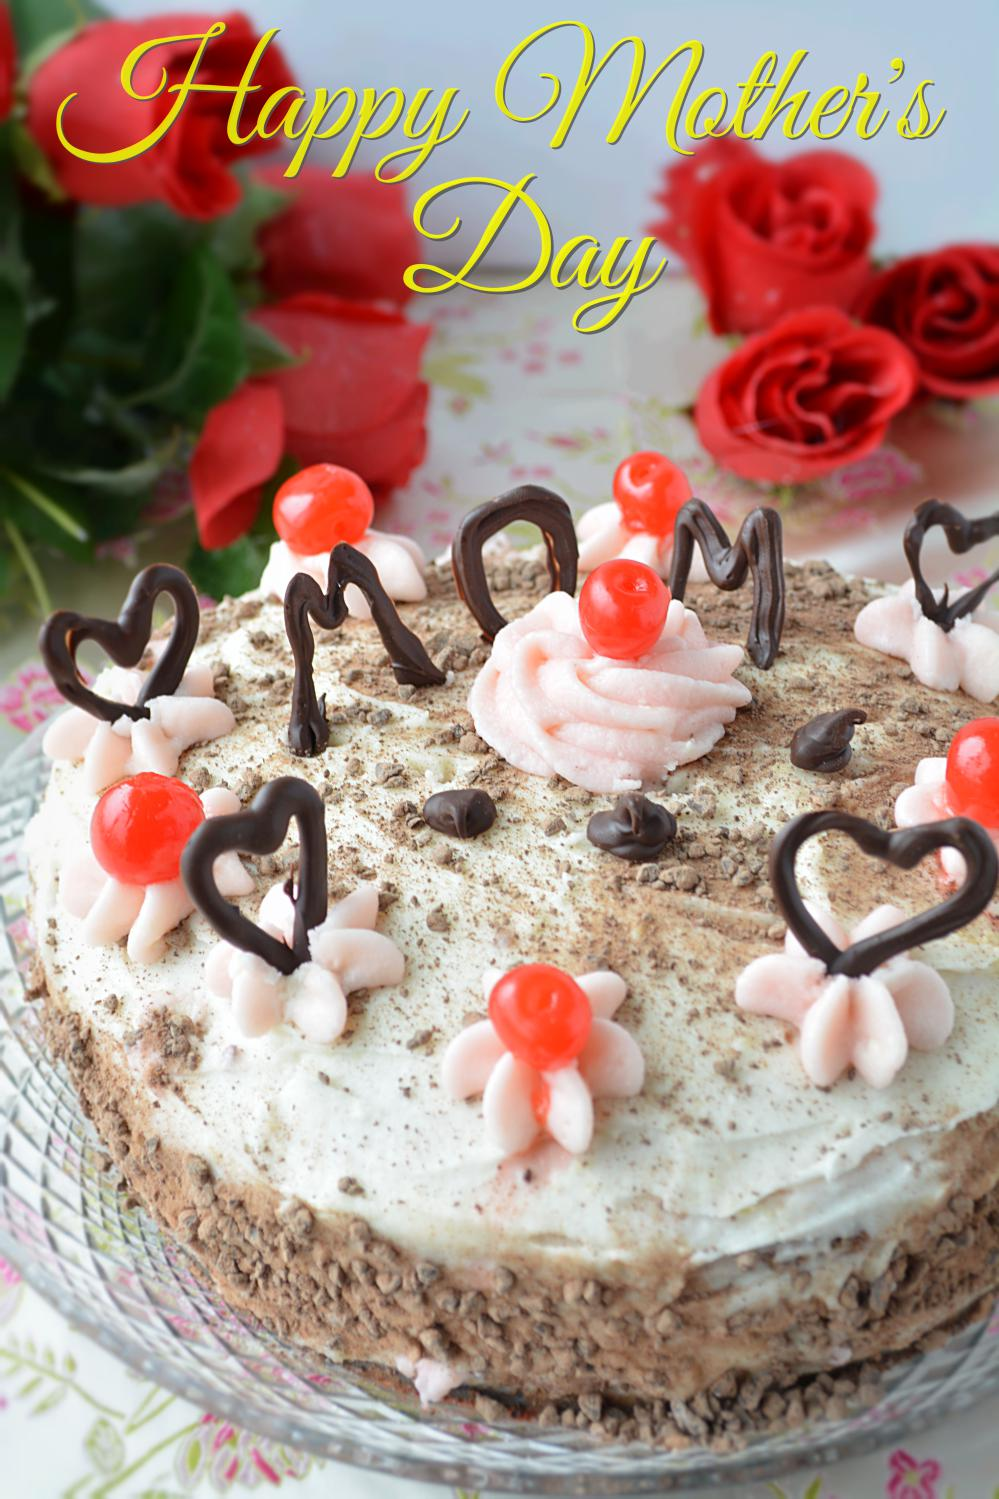 Eggless Cake Using Cake Mix